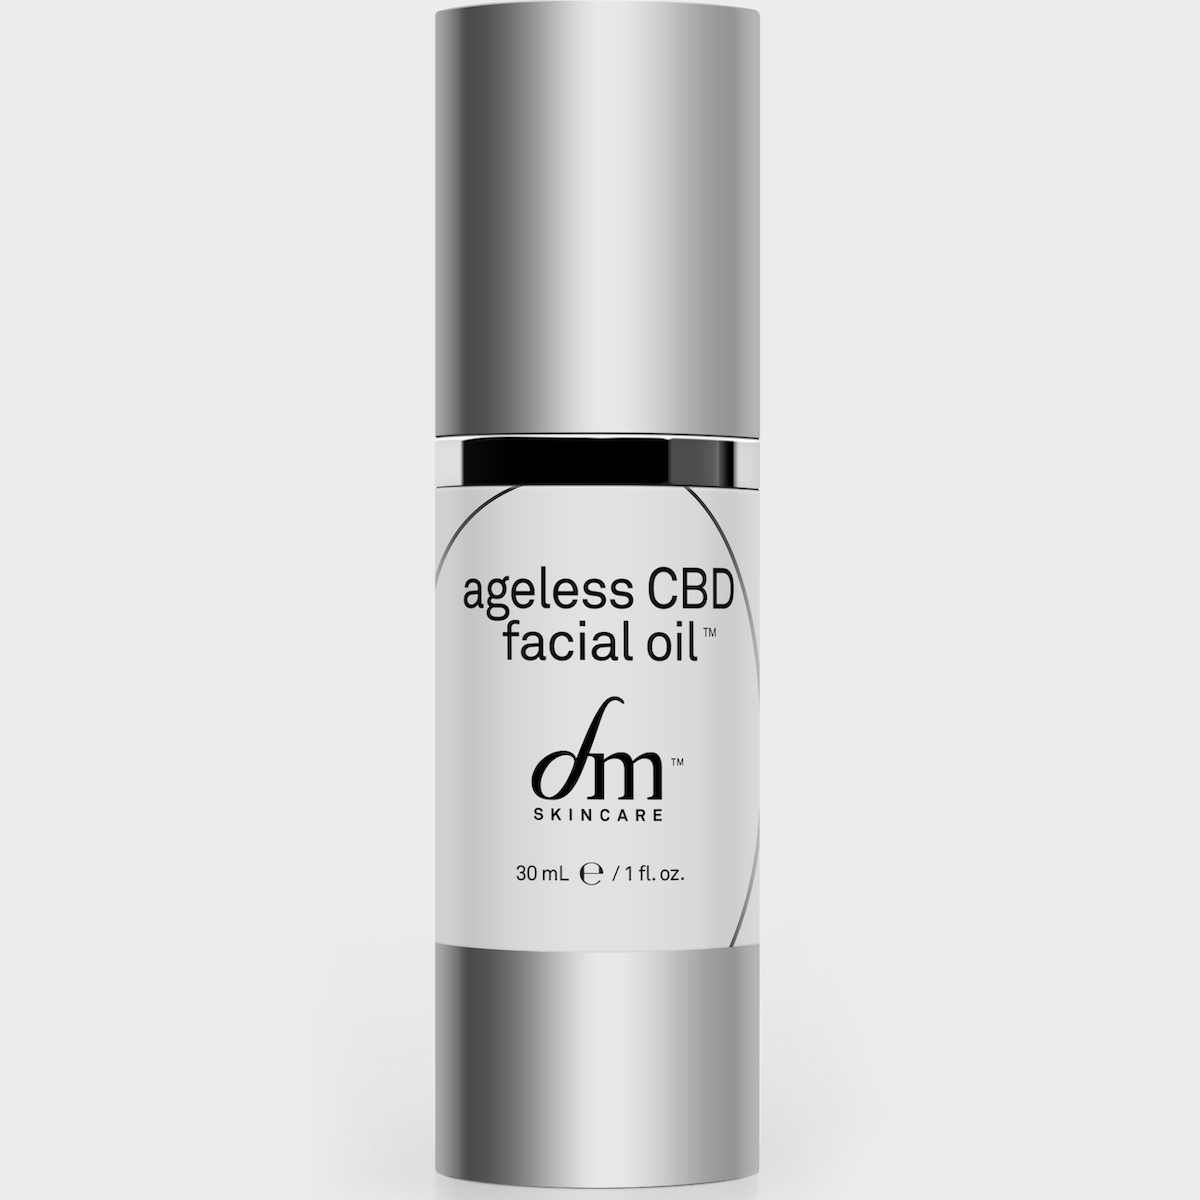 ageless facial oil™